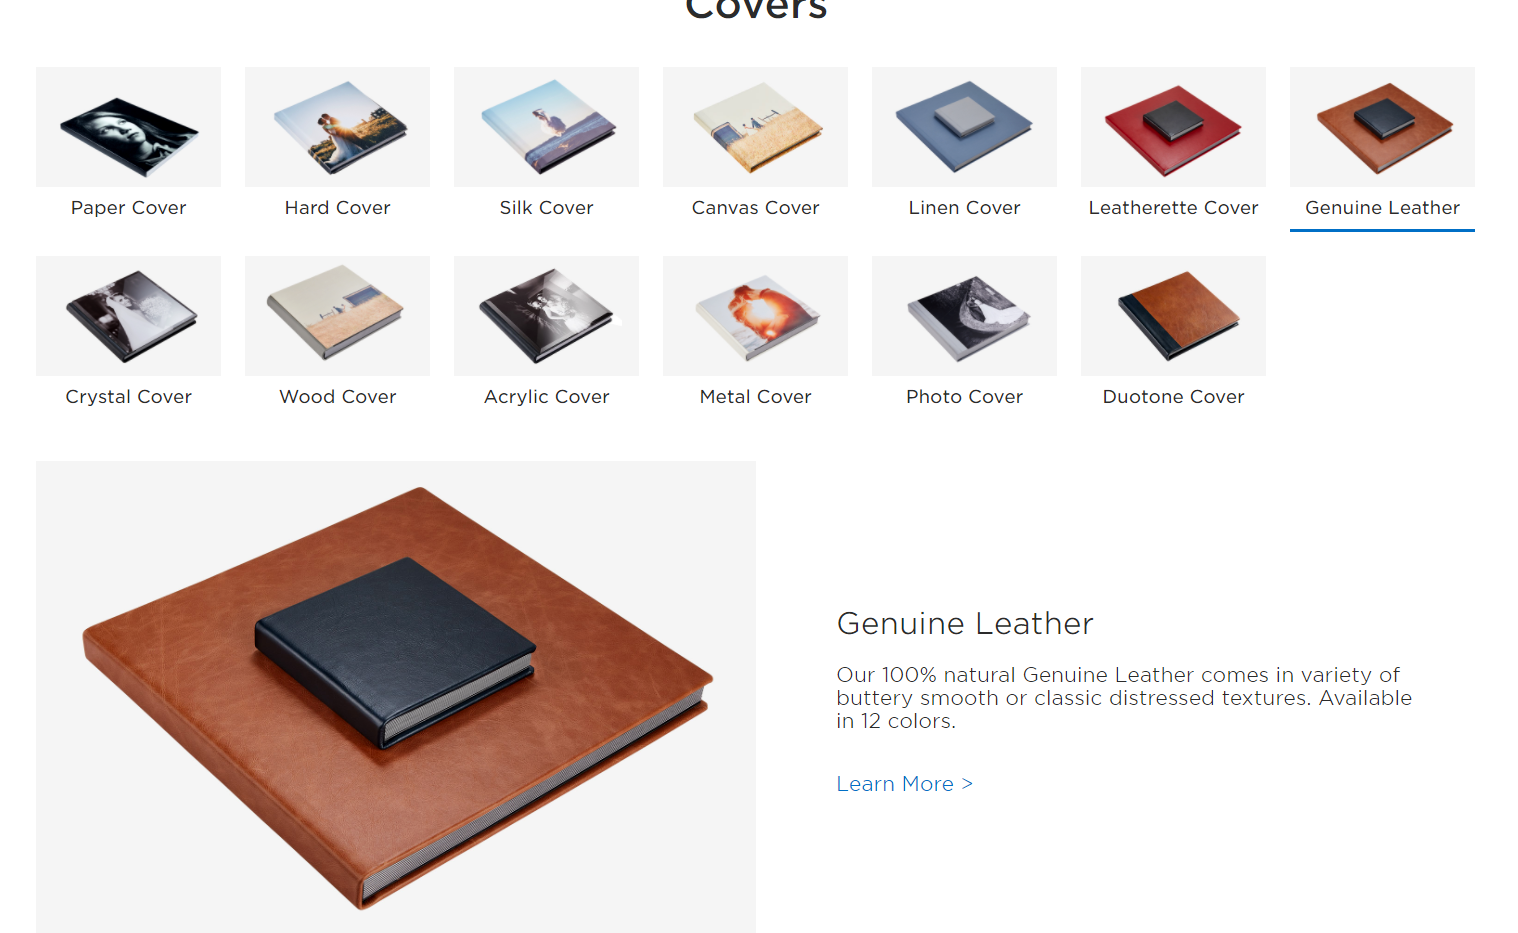 7_Genuine Leather Cover.png